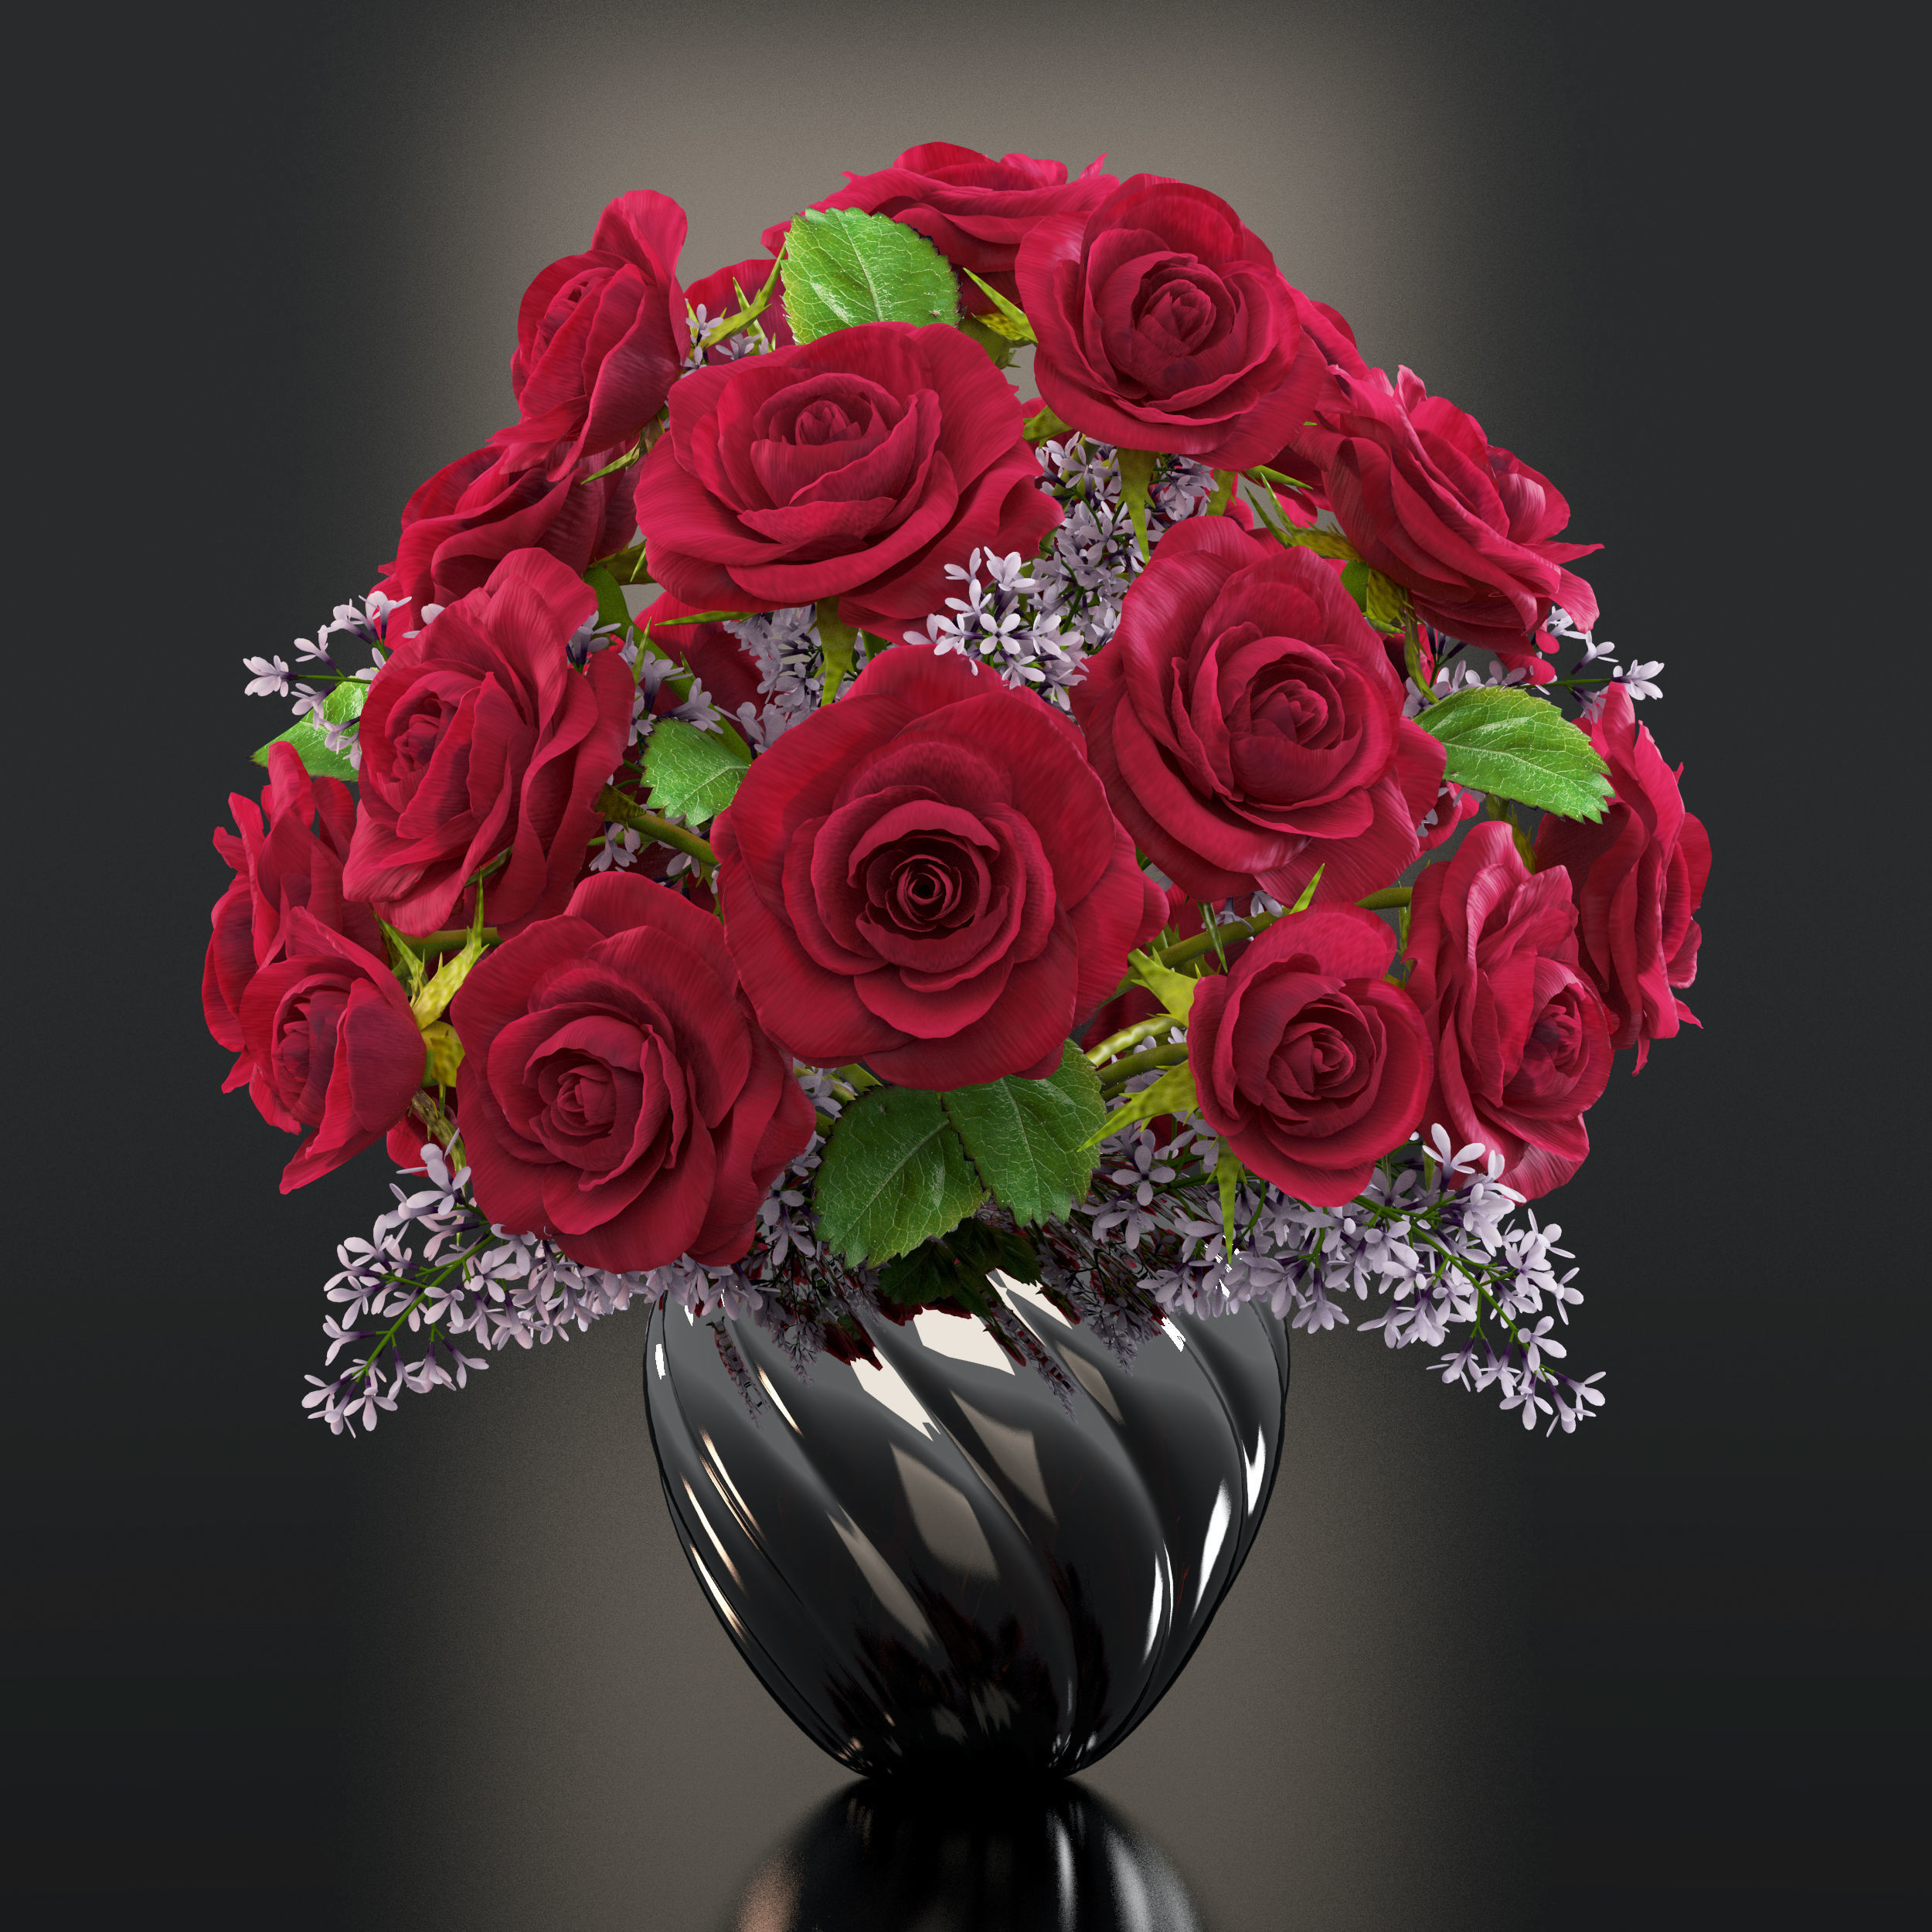 RED ROSES 3D model   CGTrader